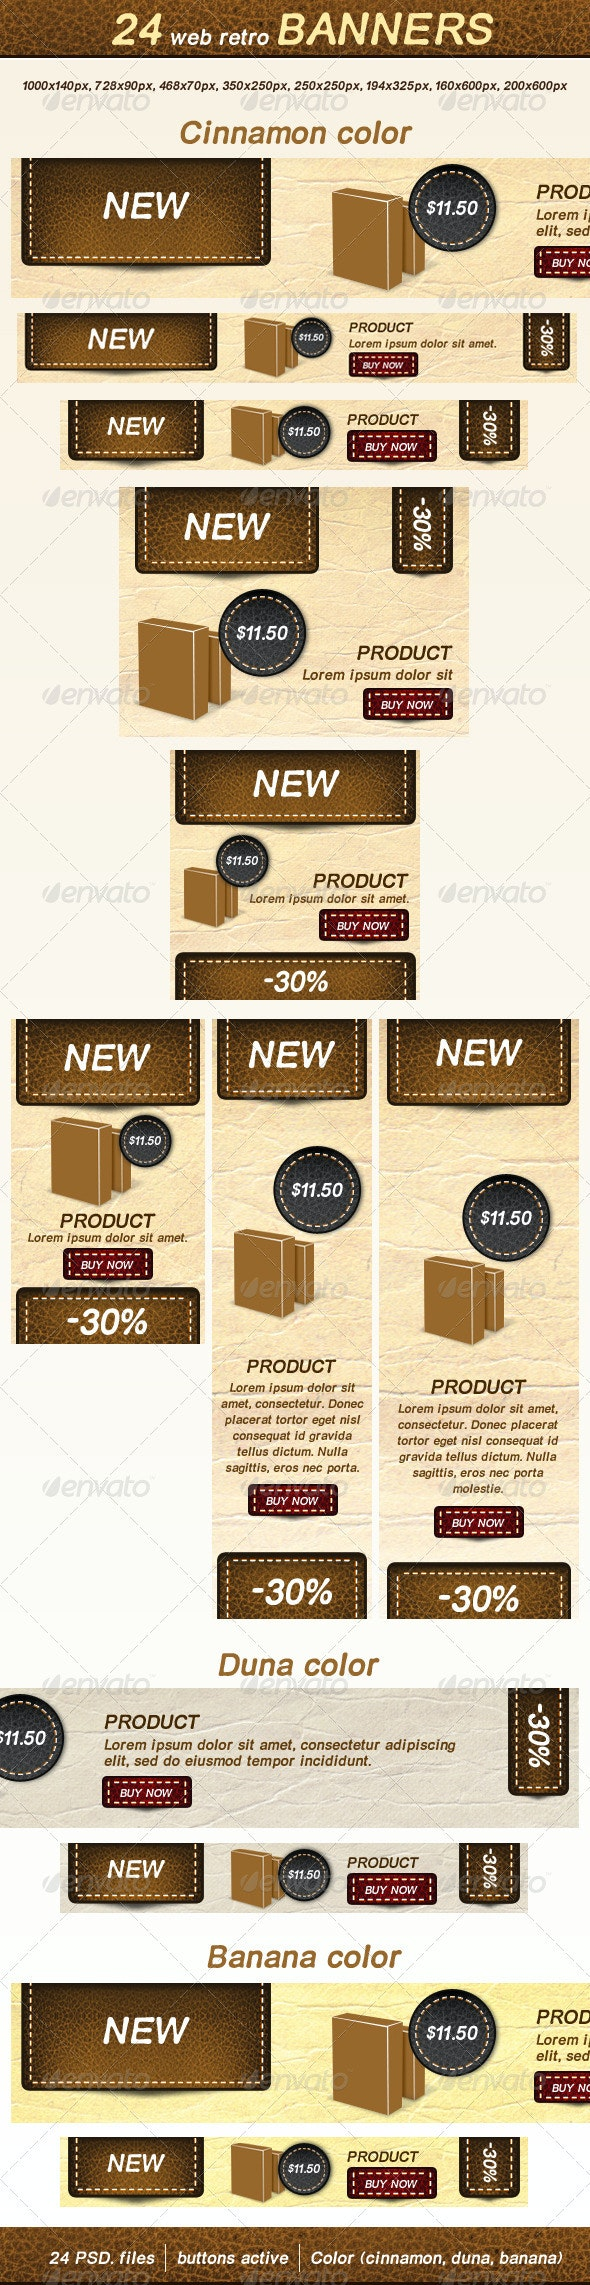 Web Retro Banners - Banners & Ads Web Elements